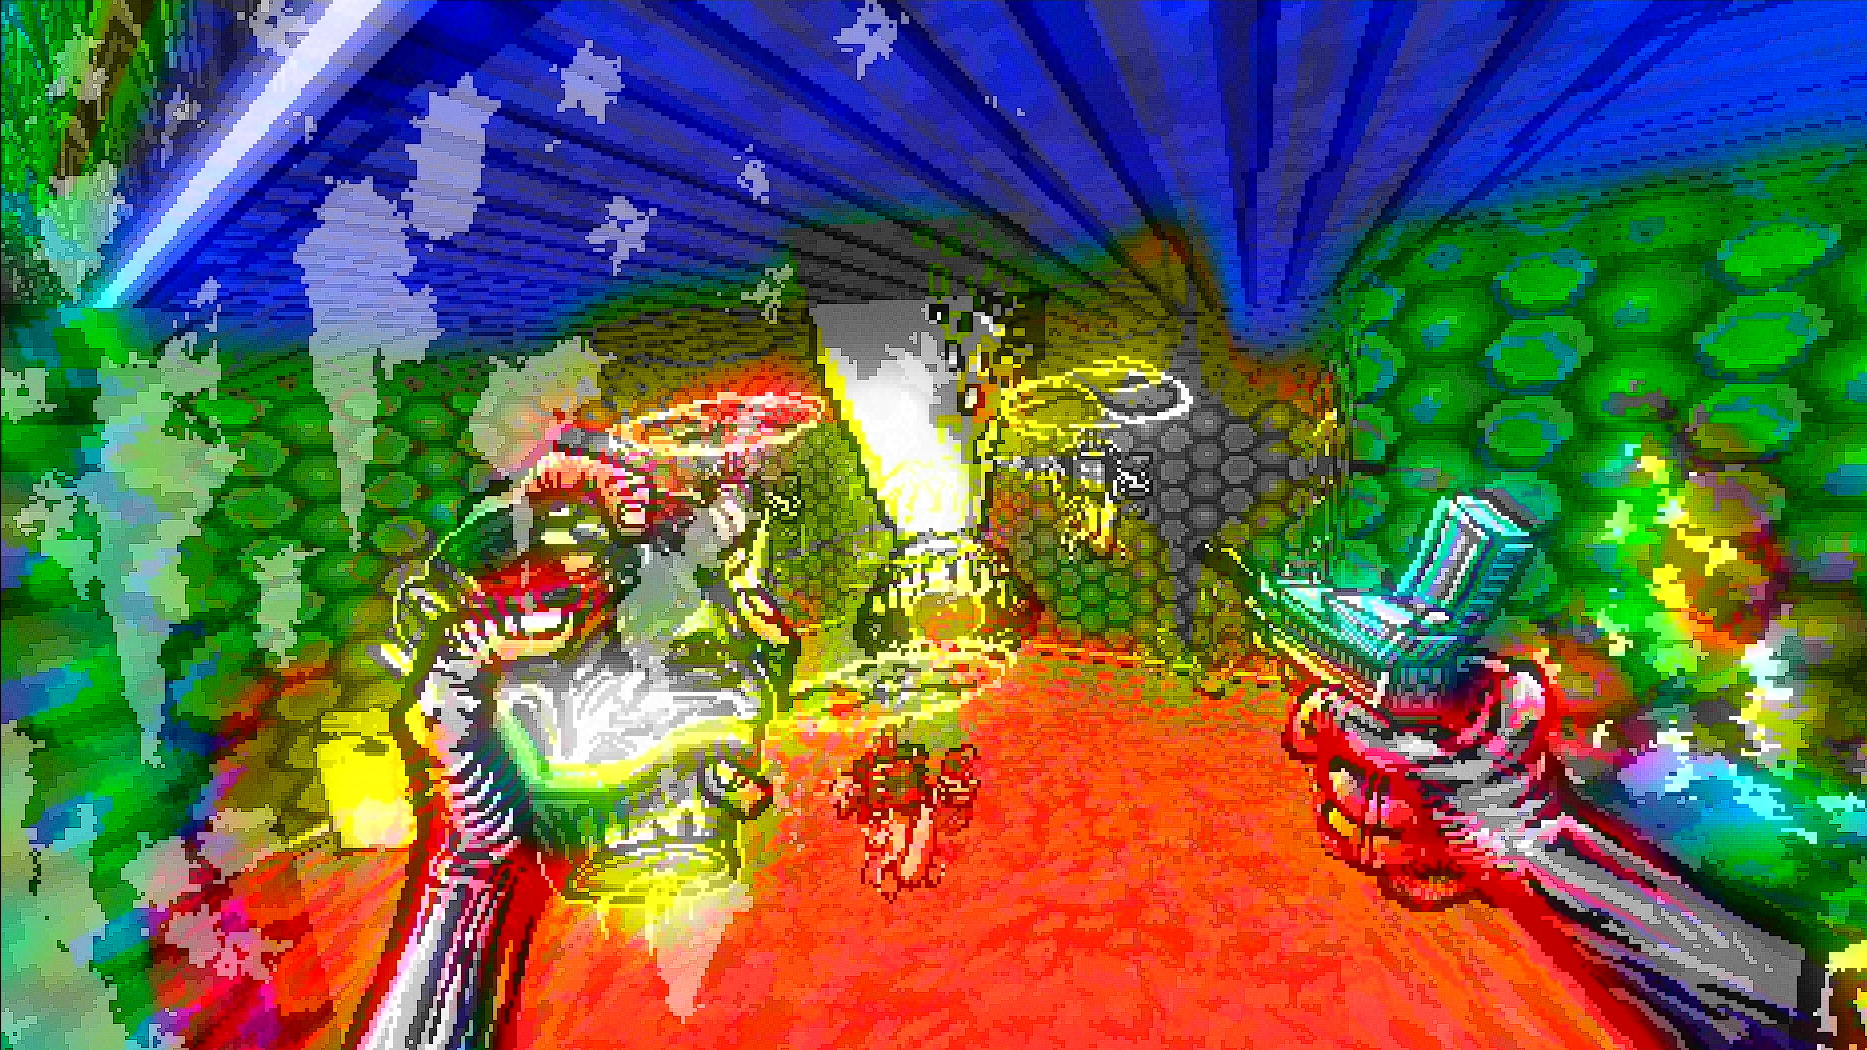 The player faces off against a mouth on a tentacle as it comes out of the cieling, and two hovering bladed... things.